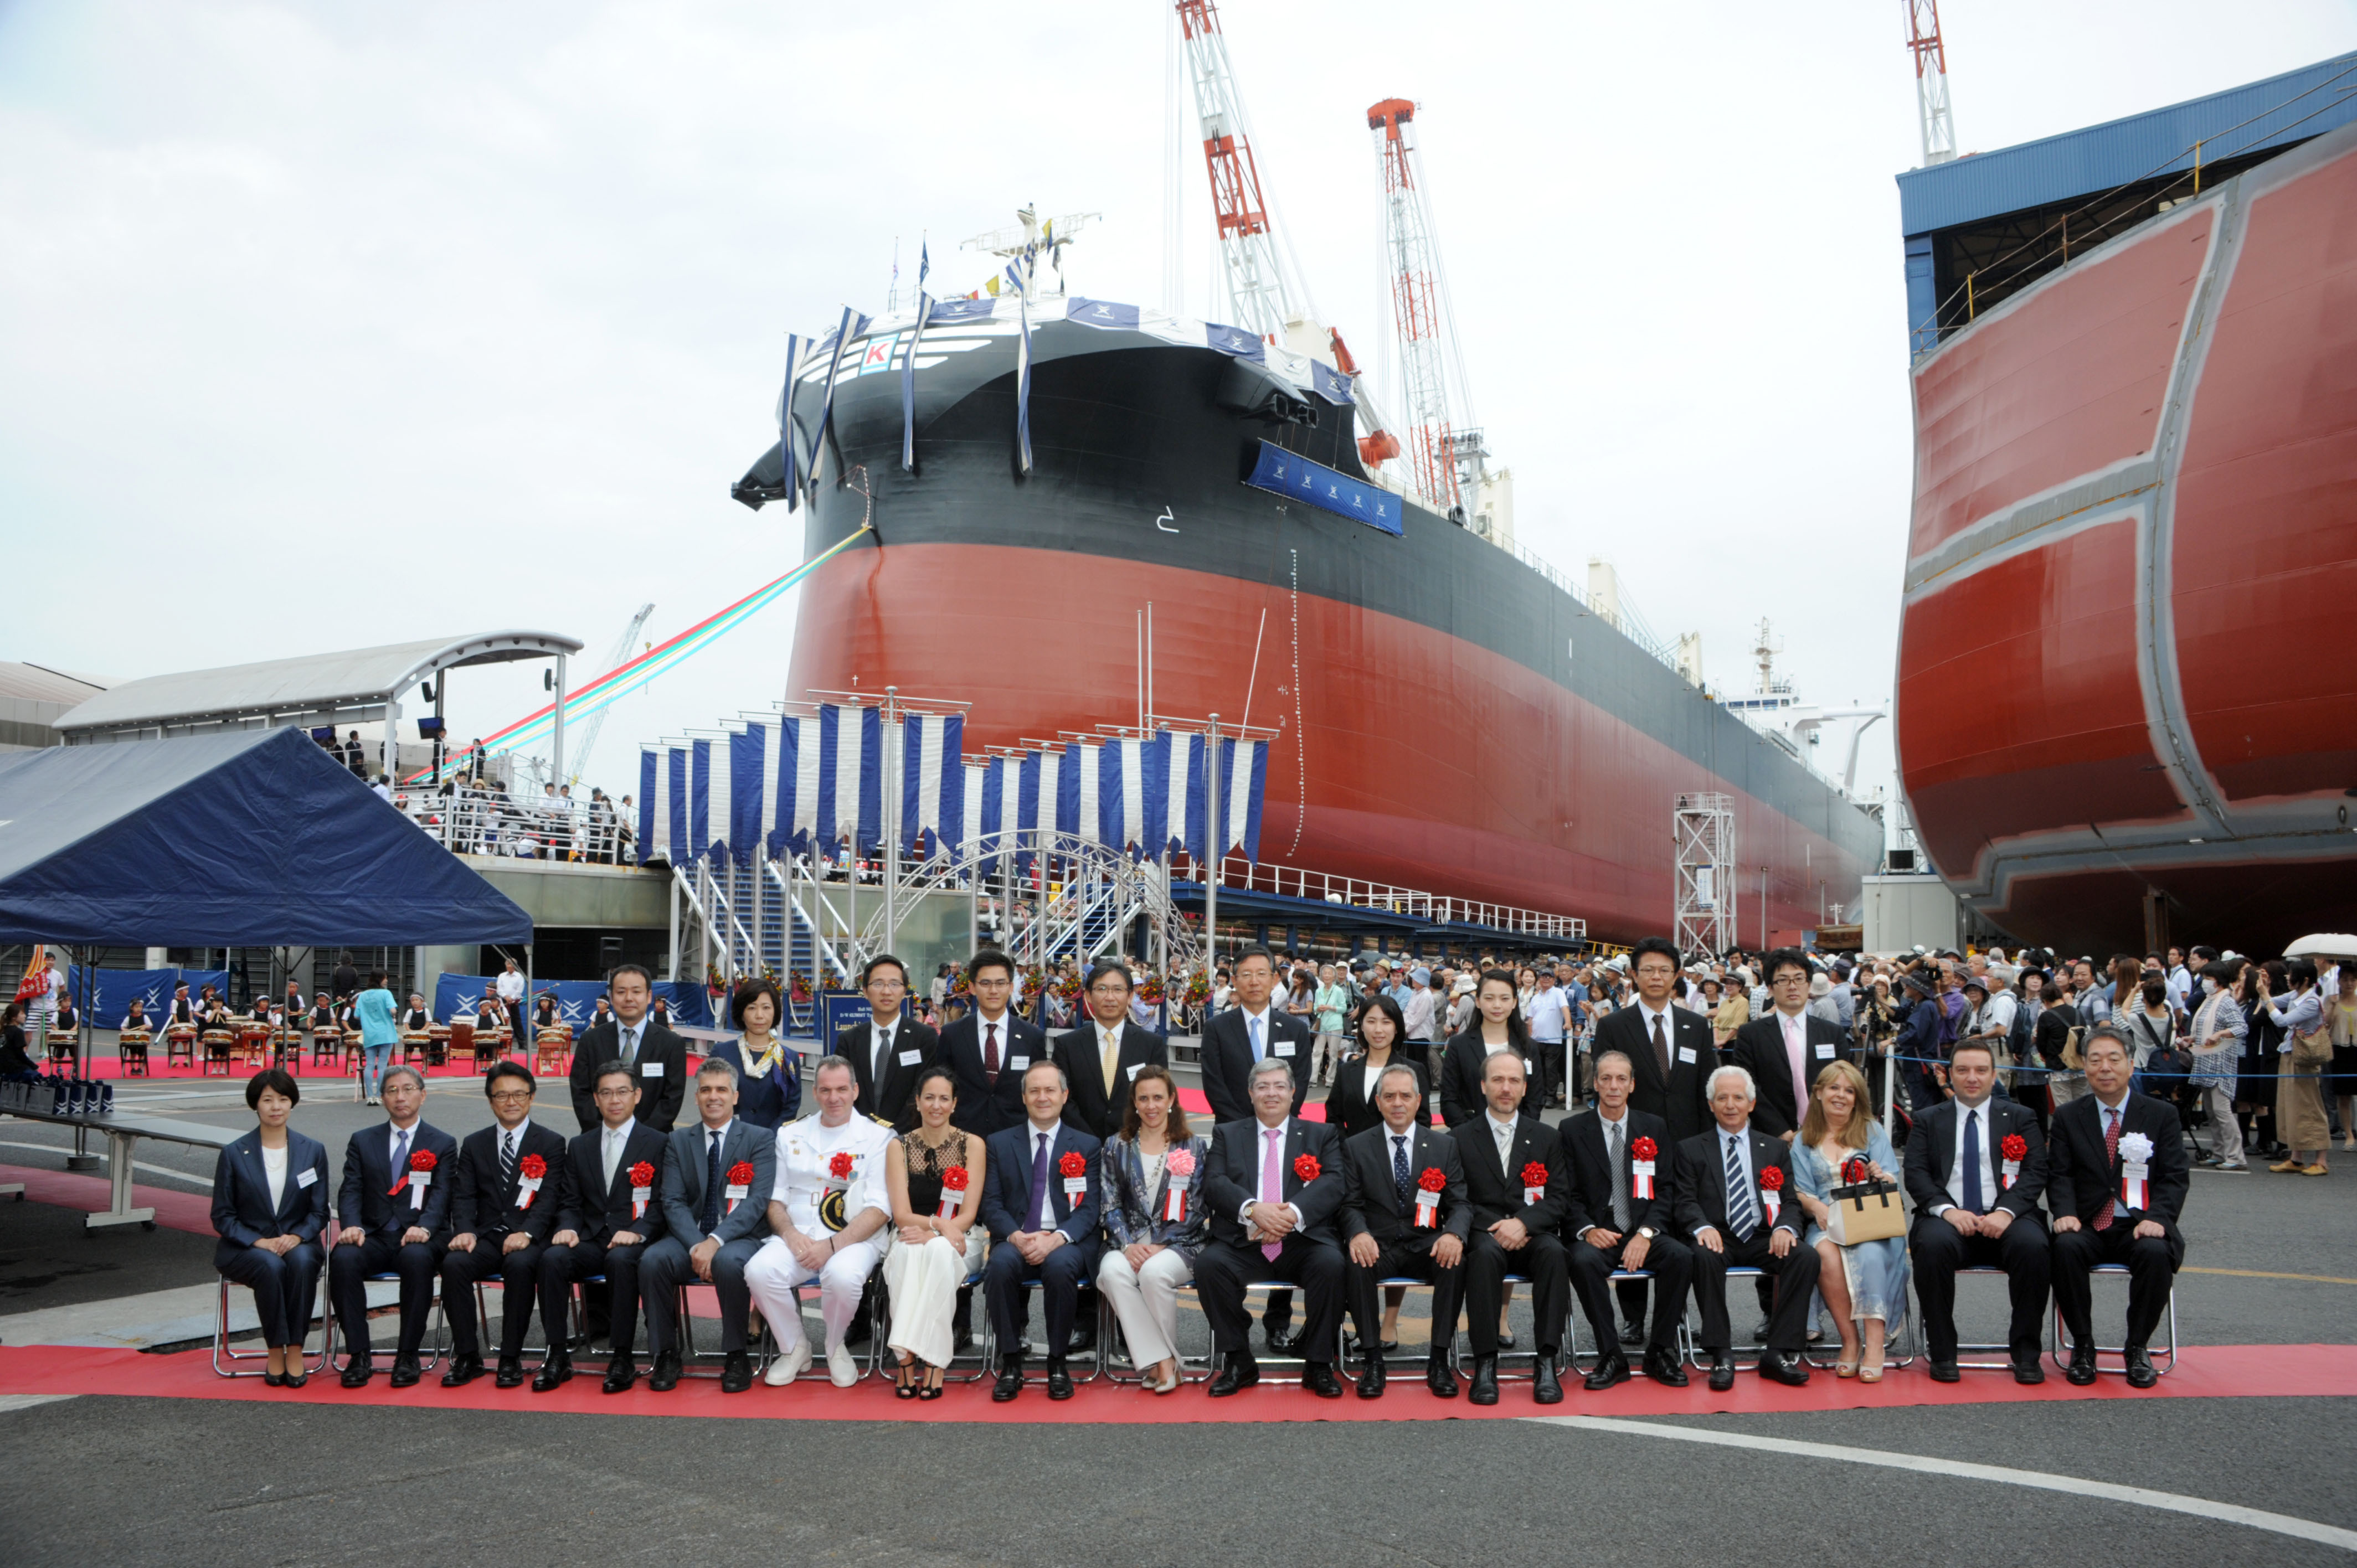 Guests pose for a photograph before Tsuneishi Shipbuilding Co., Ltd. launches a 63,700-ton vessel in celebration of its 100th anniversary on June 26 in the city of Fukuyama in Hiroshima Prefecture. | COURTESY OF TSUNEISHI SHIPBUILDING CO., LTD.